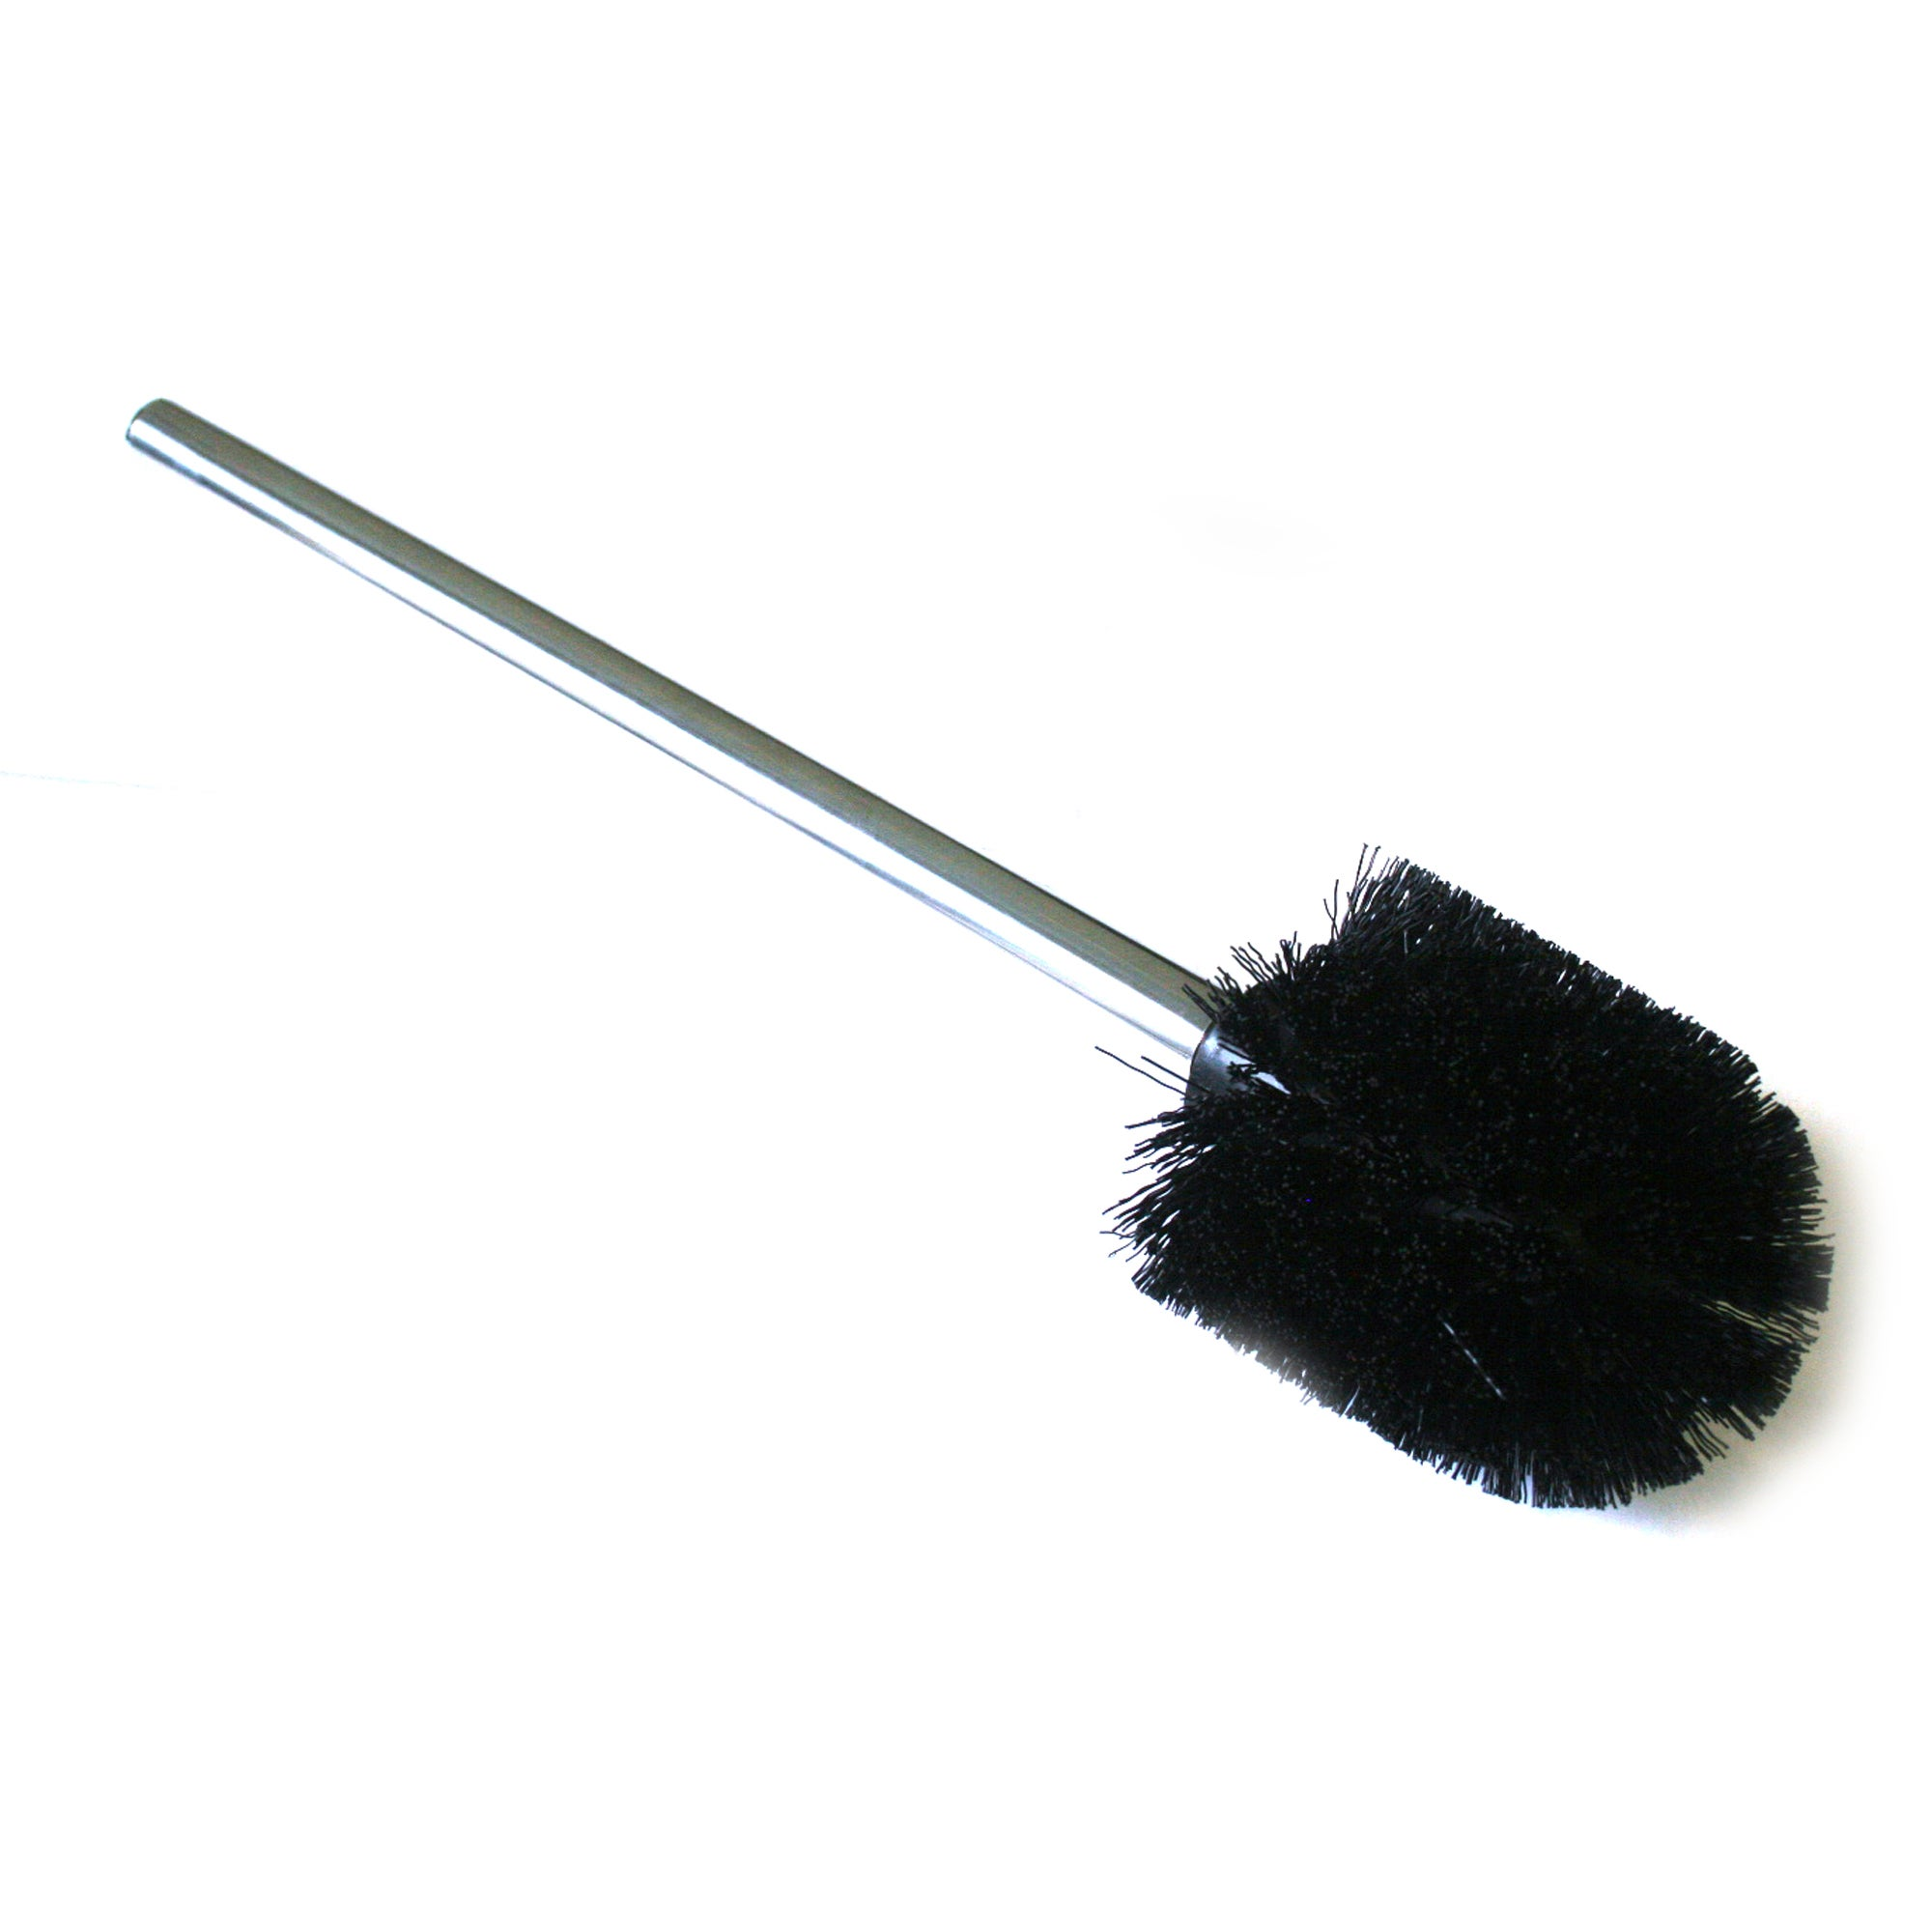 Black Bathroom Basics Toilet Brush